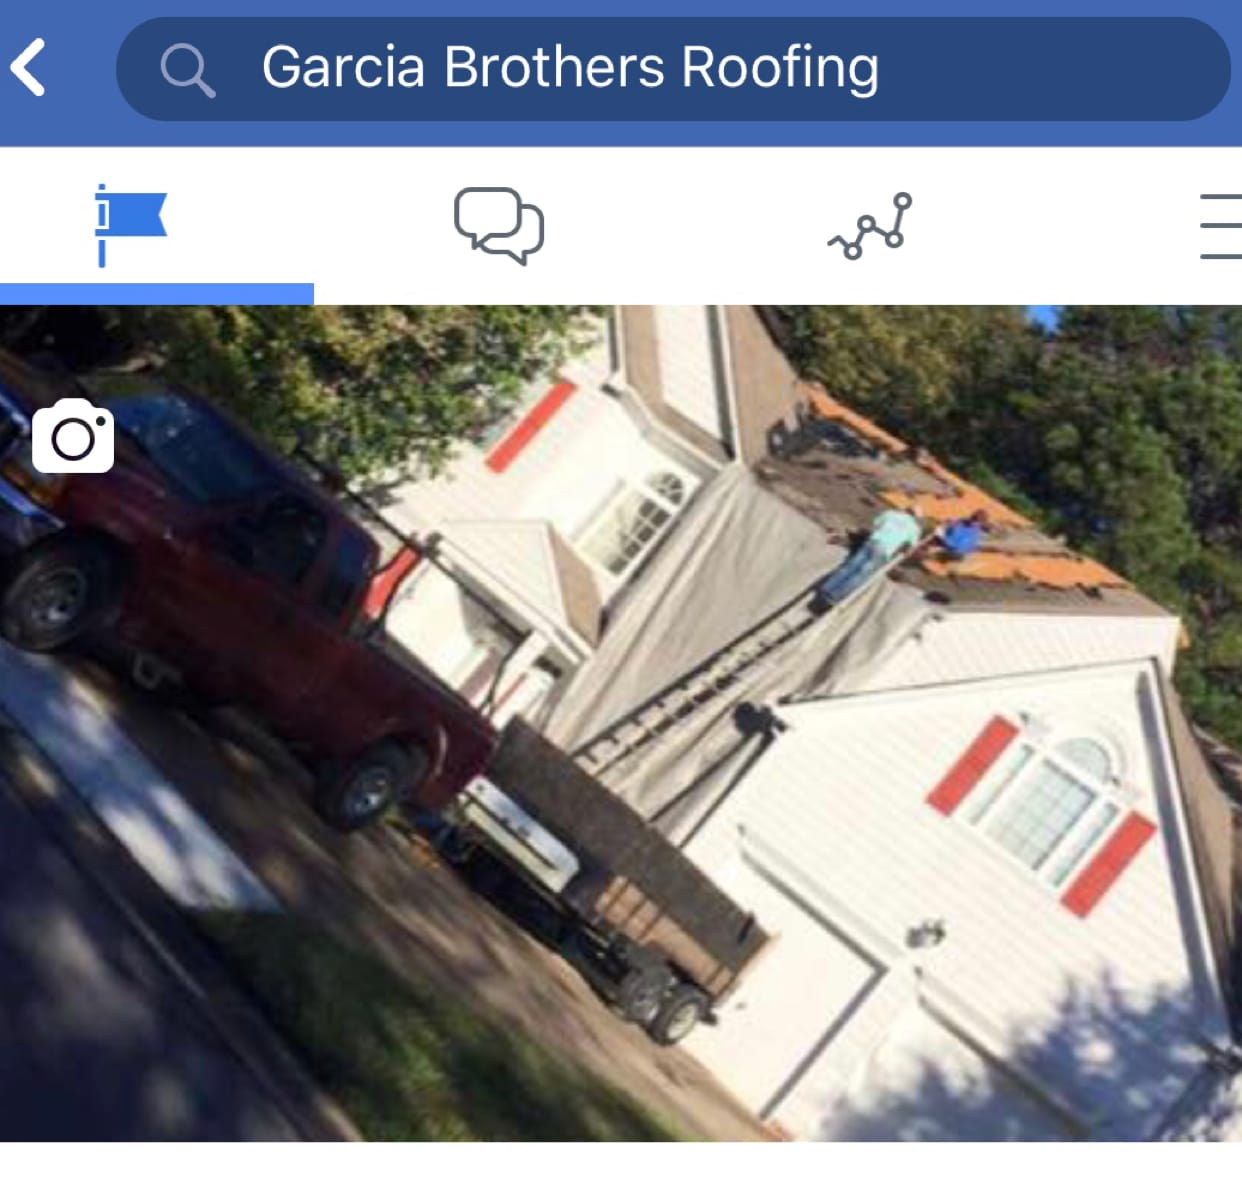 Garcia Brothers Roofing